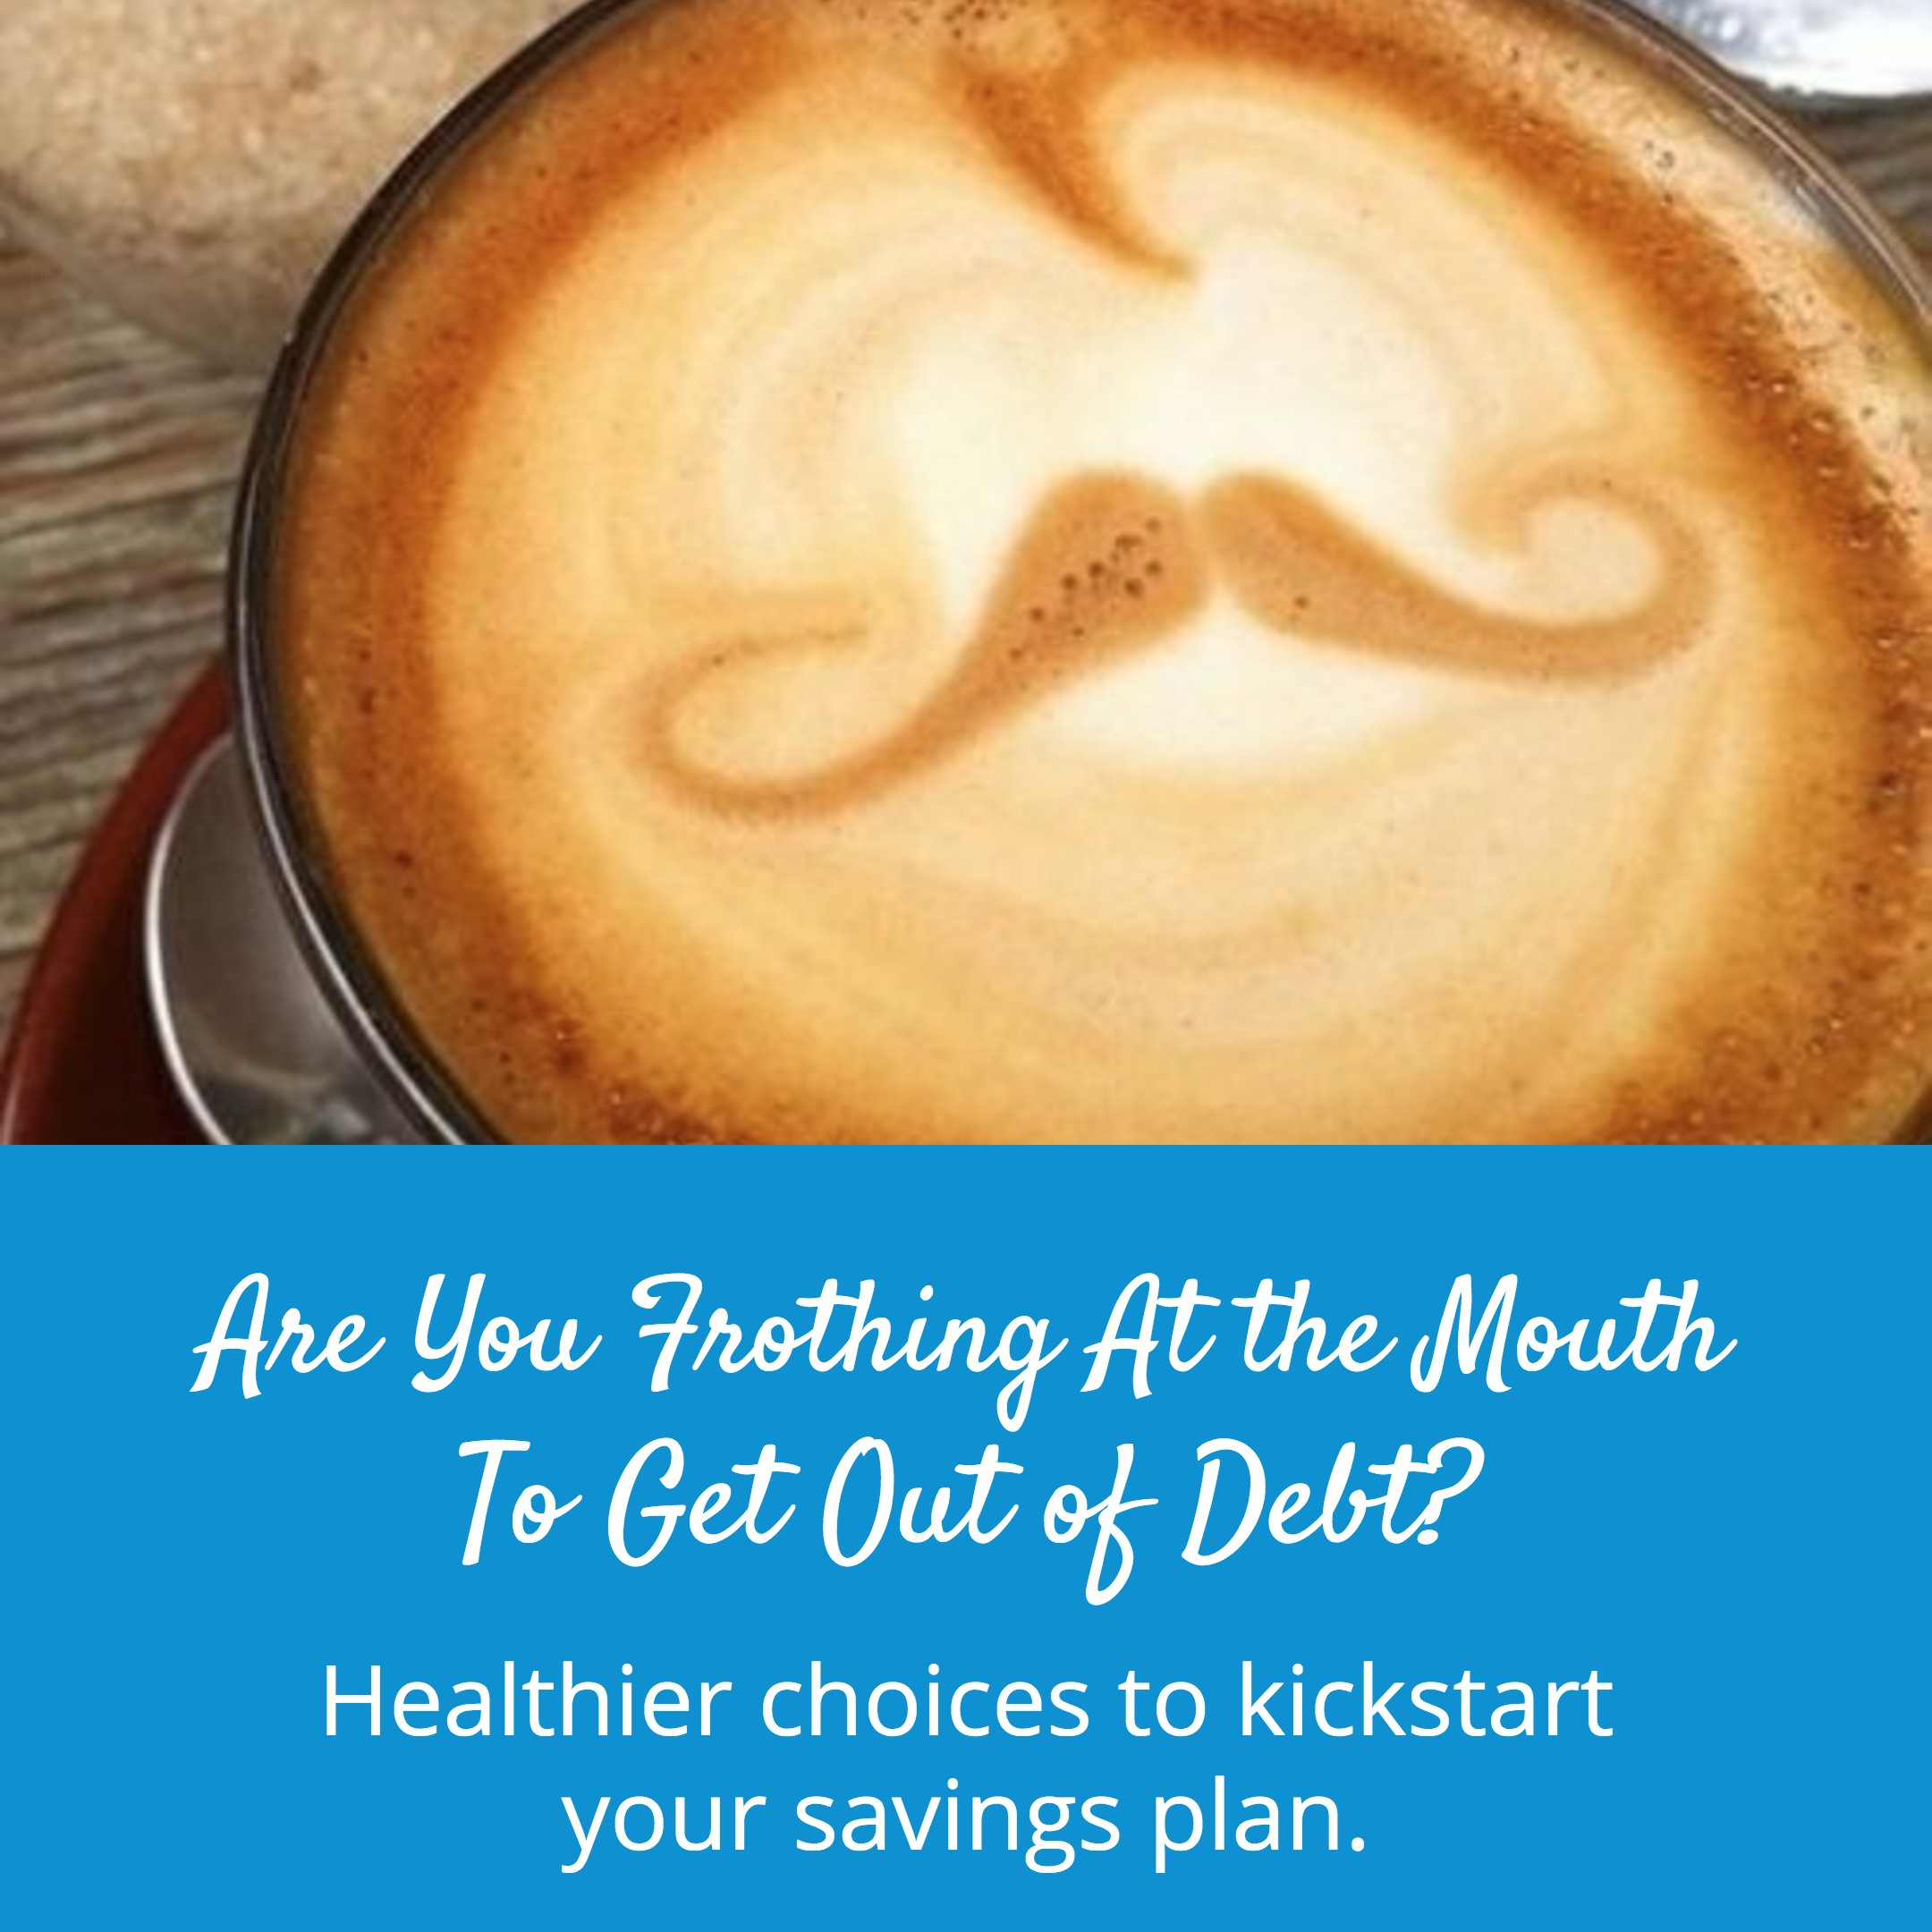 Are You Frothing At the Mouth To Get Out of Debt?